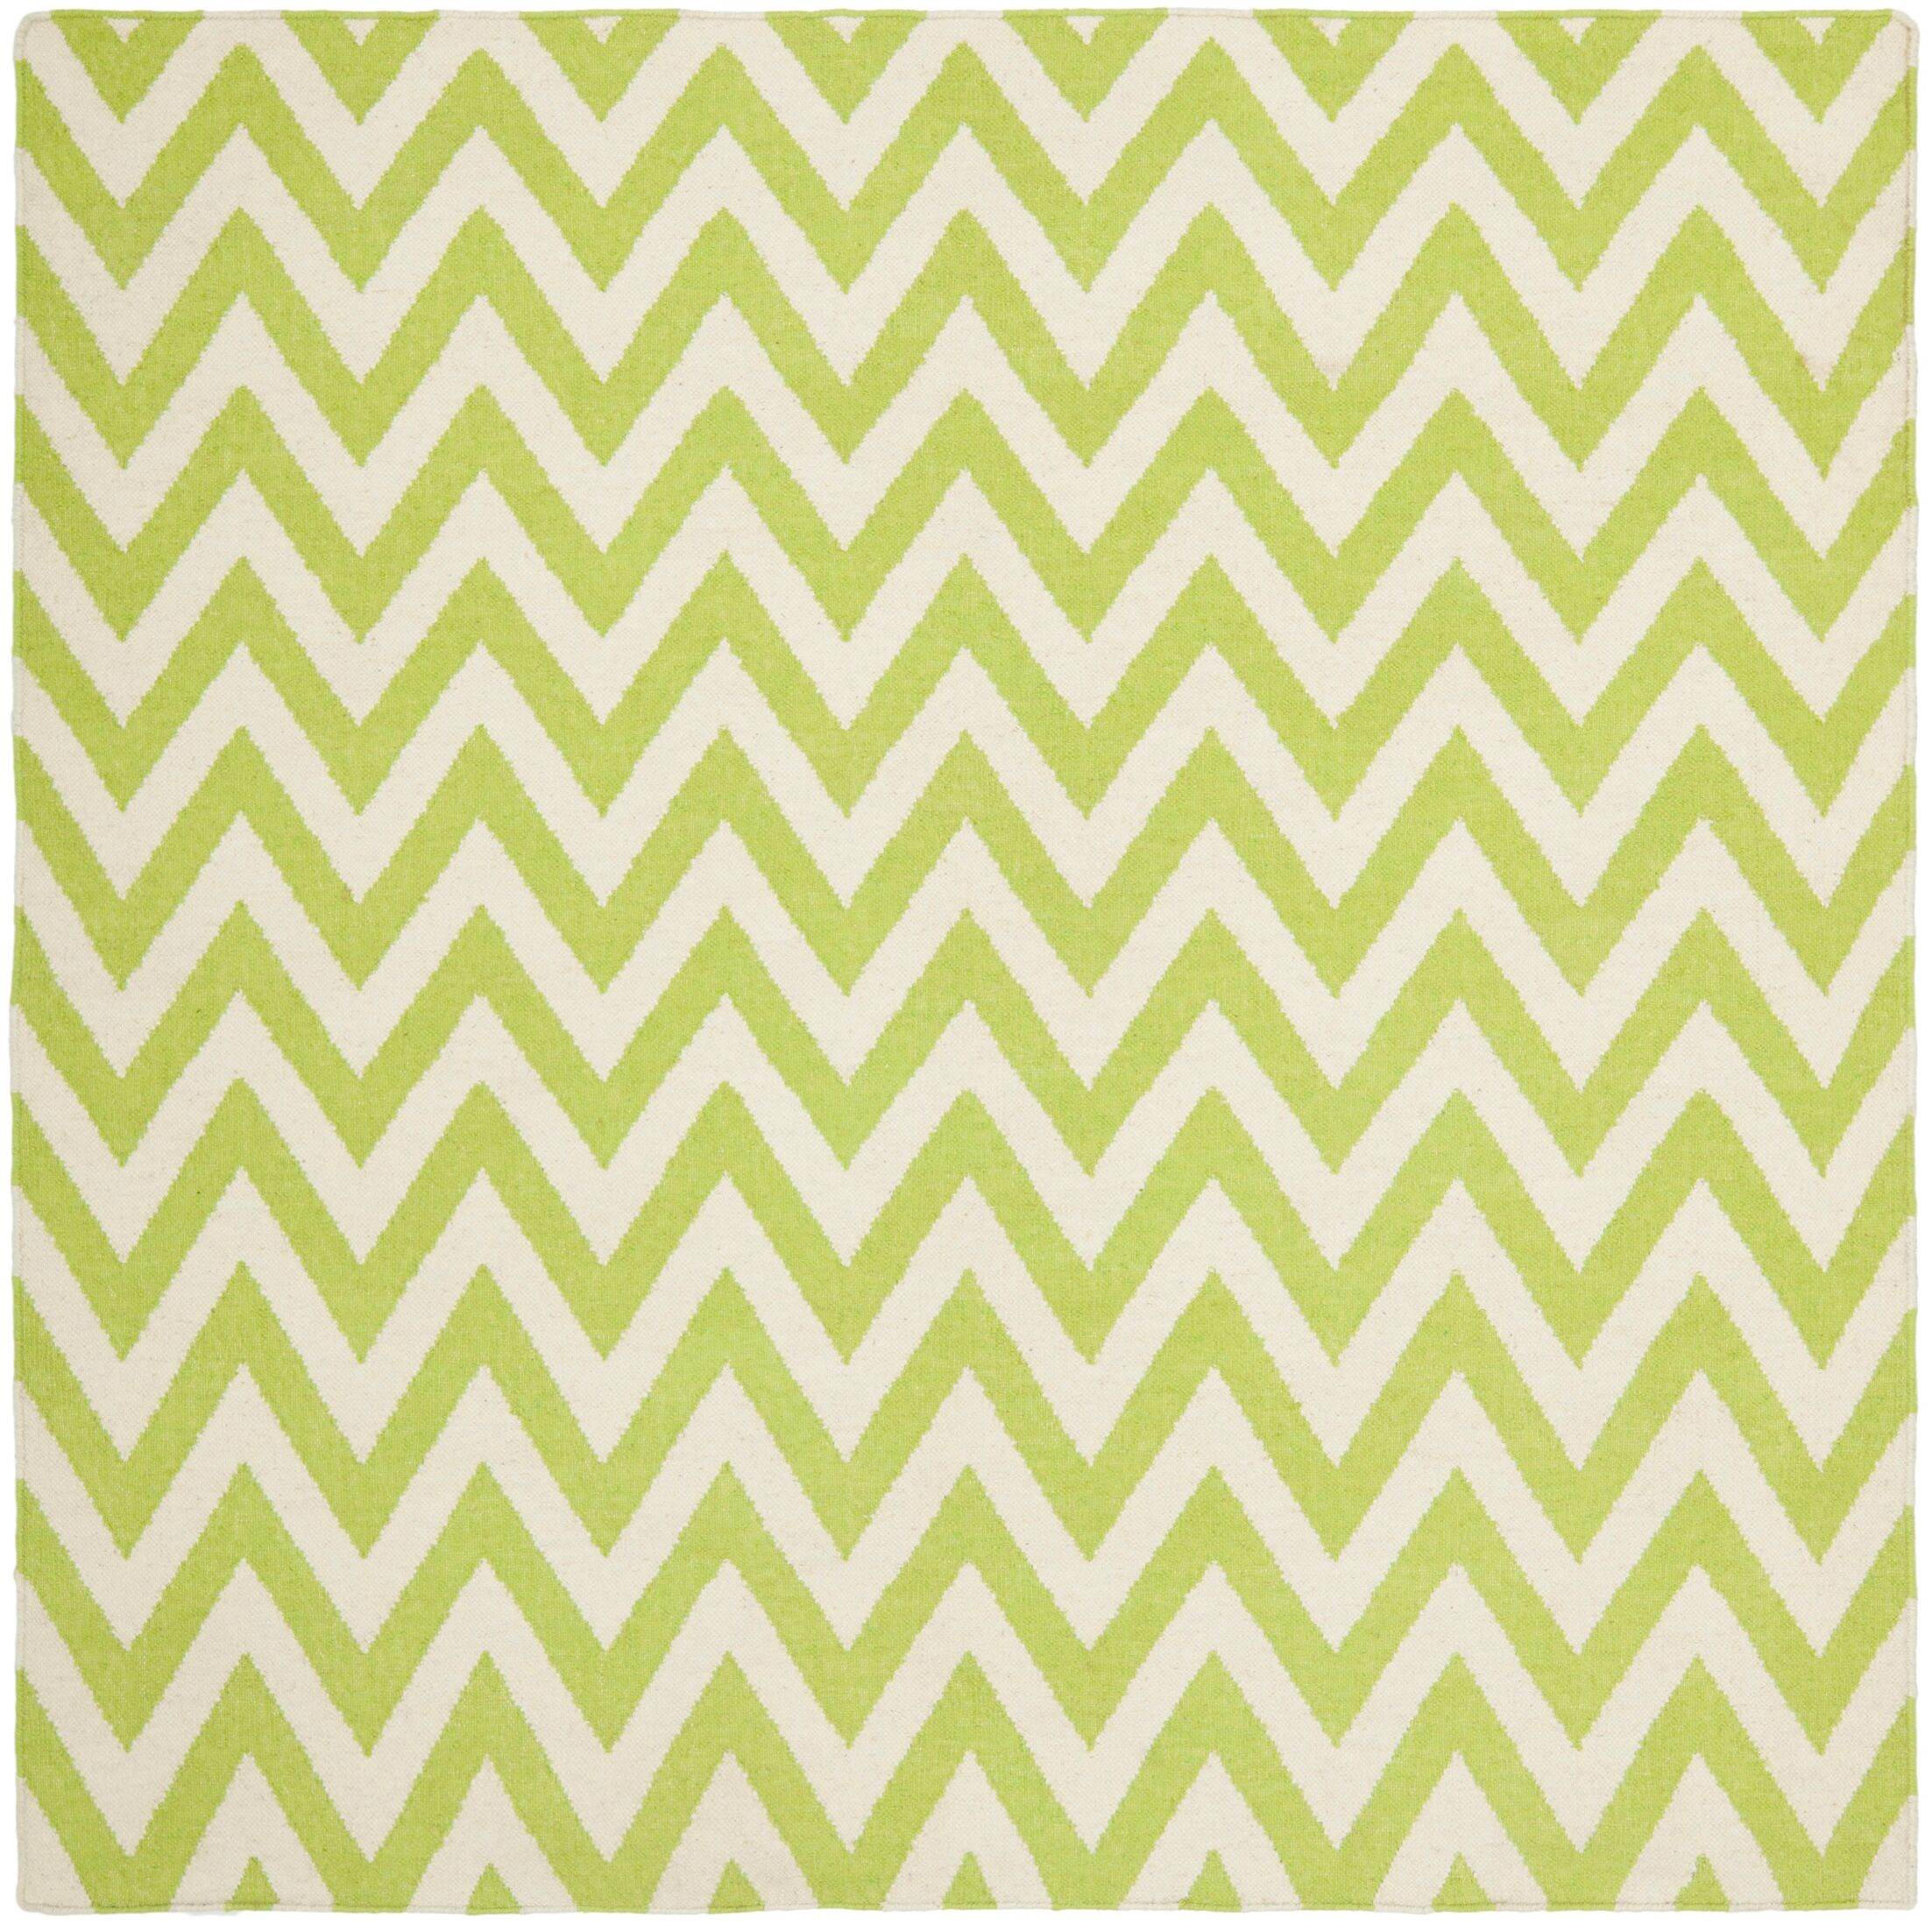 Moves Like Zigzagger Hand-Woven Wool Green/Ivory Area Rug Rug Size: Square 6'